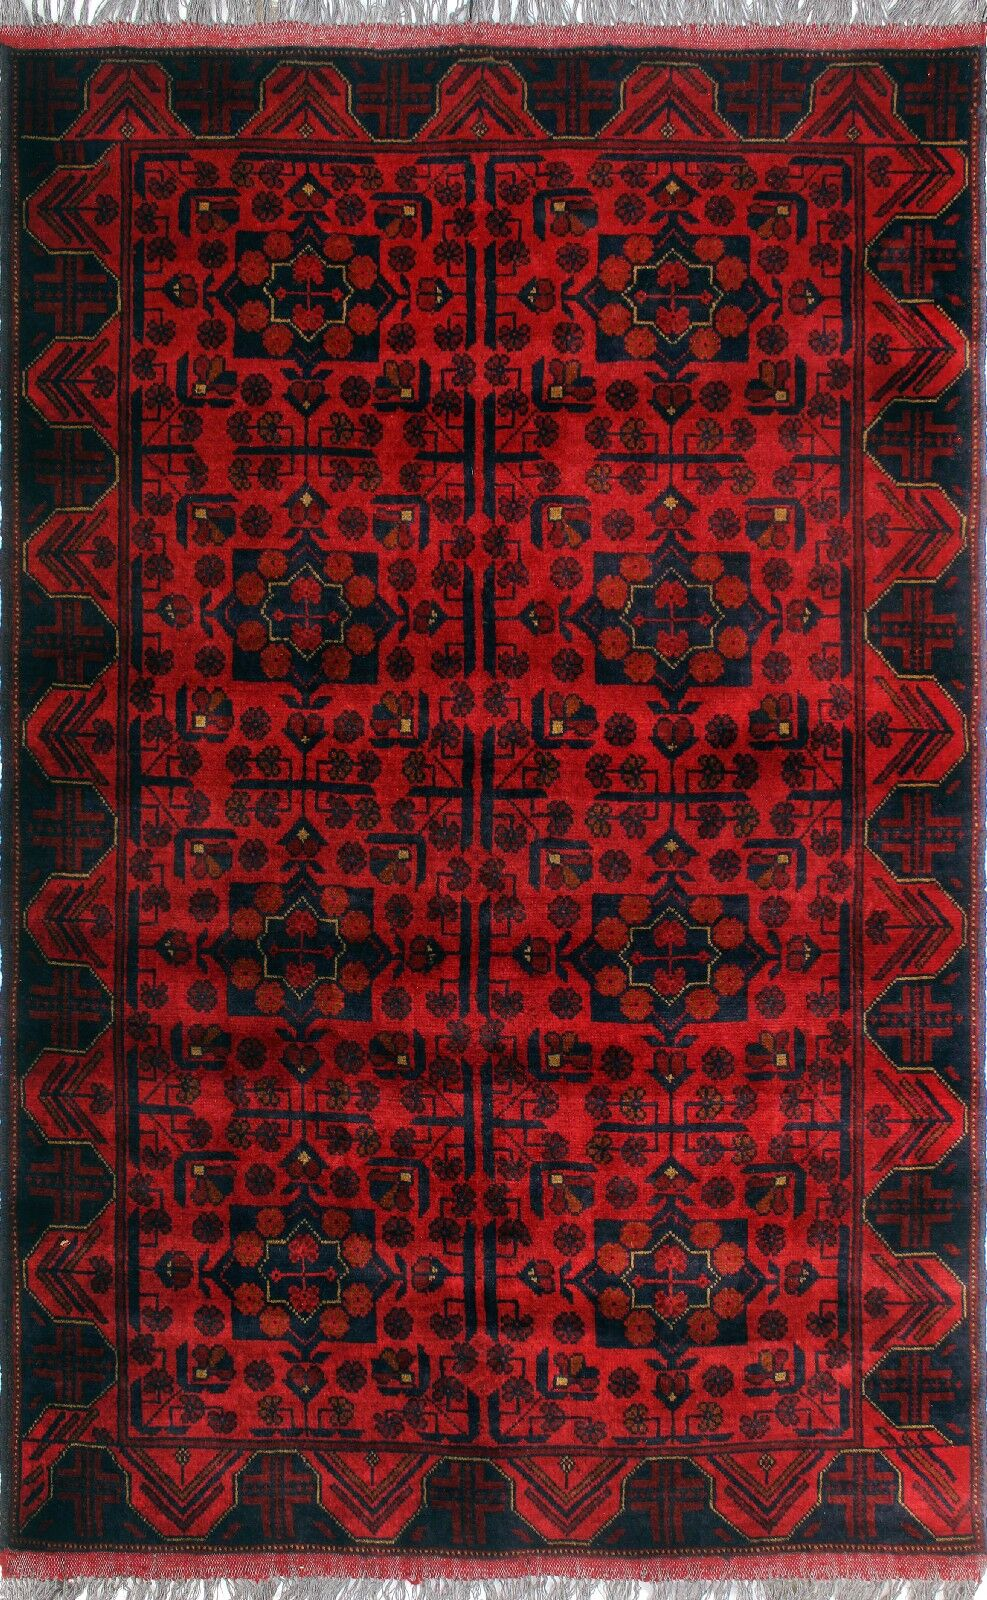 One-of-a-Kind Millar Kereenyaga Hand-Knotted Wool Red Are Rug